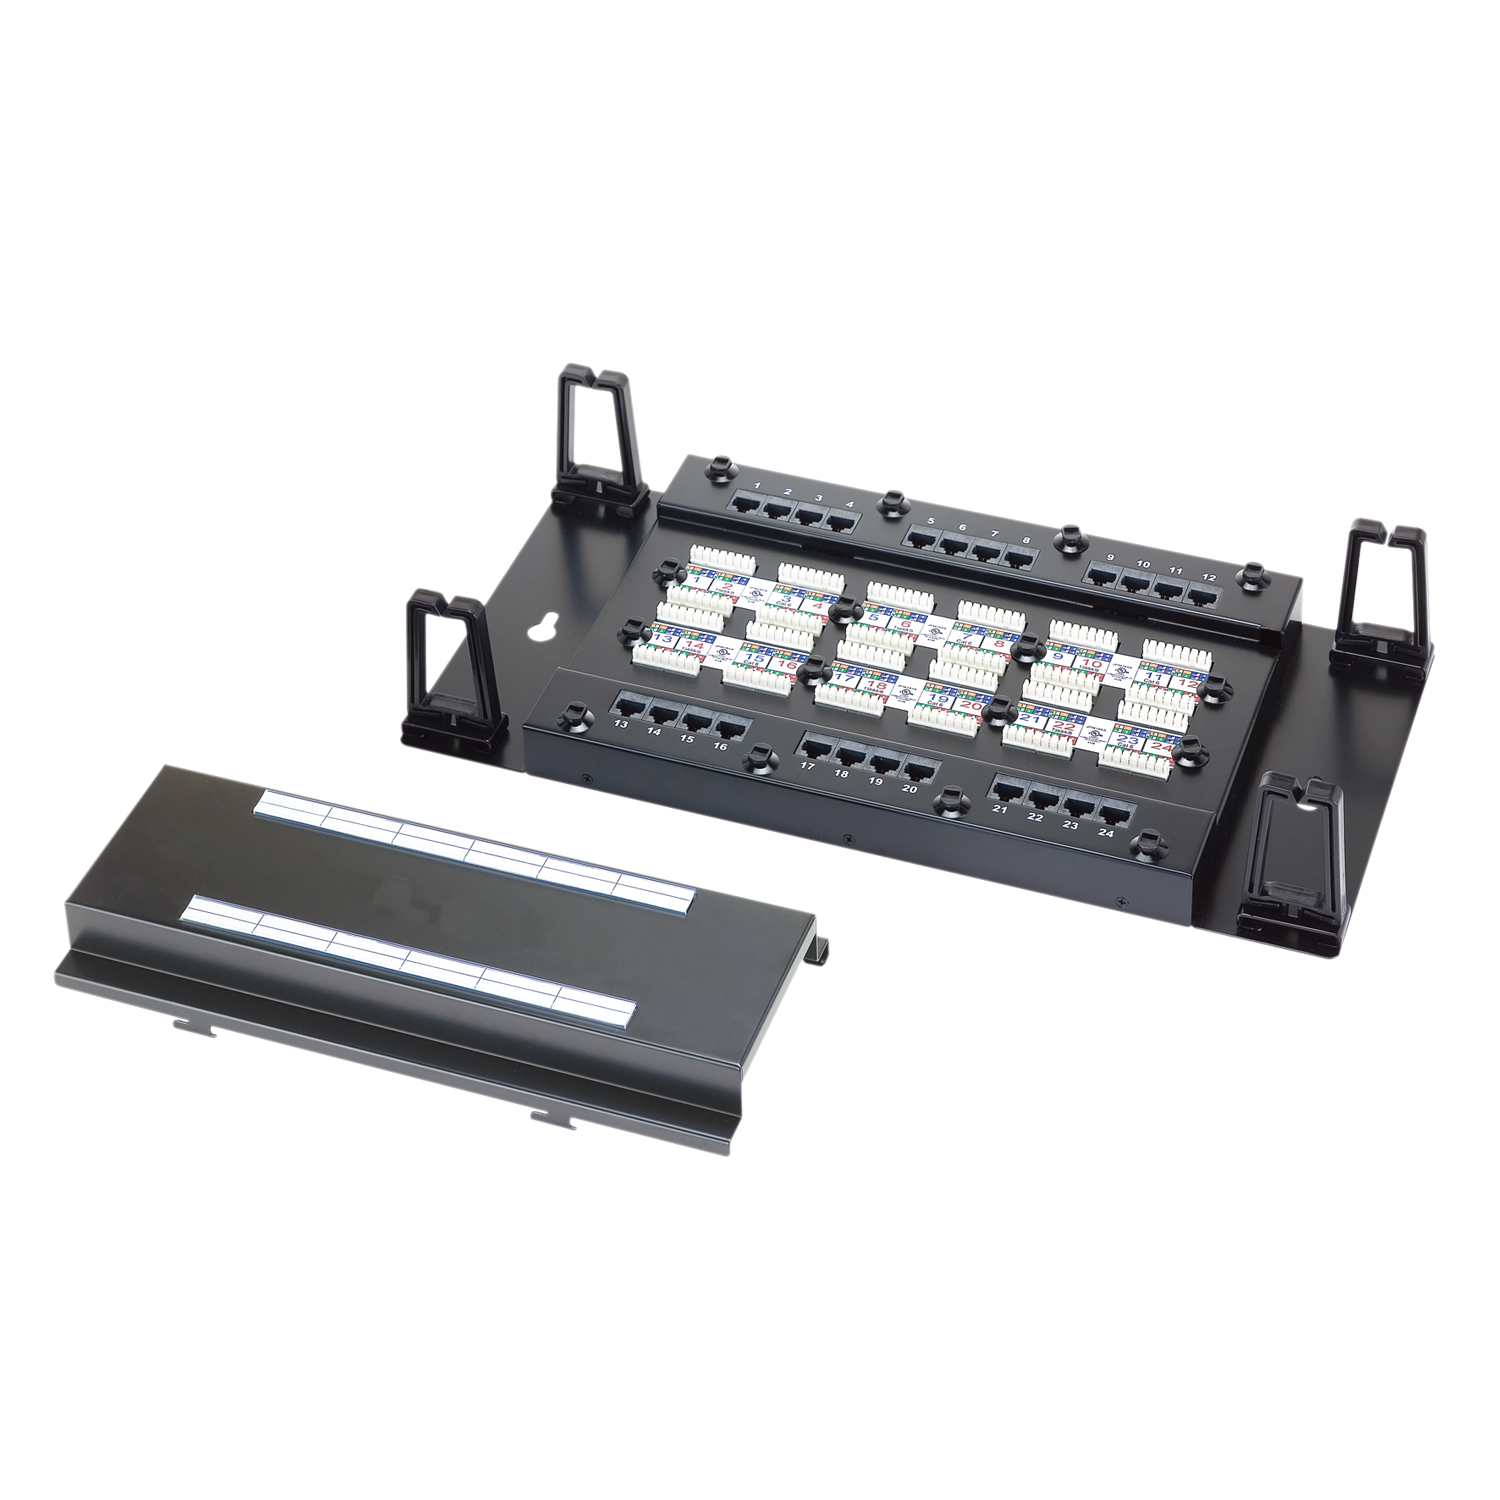 Wall Mount Moludar Type 24-Port UTP Modular Patch Panel - Wall Mount Moludar Type 24-Port UTP Modular Patch Panel